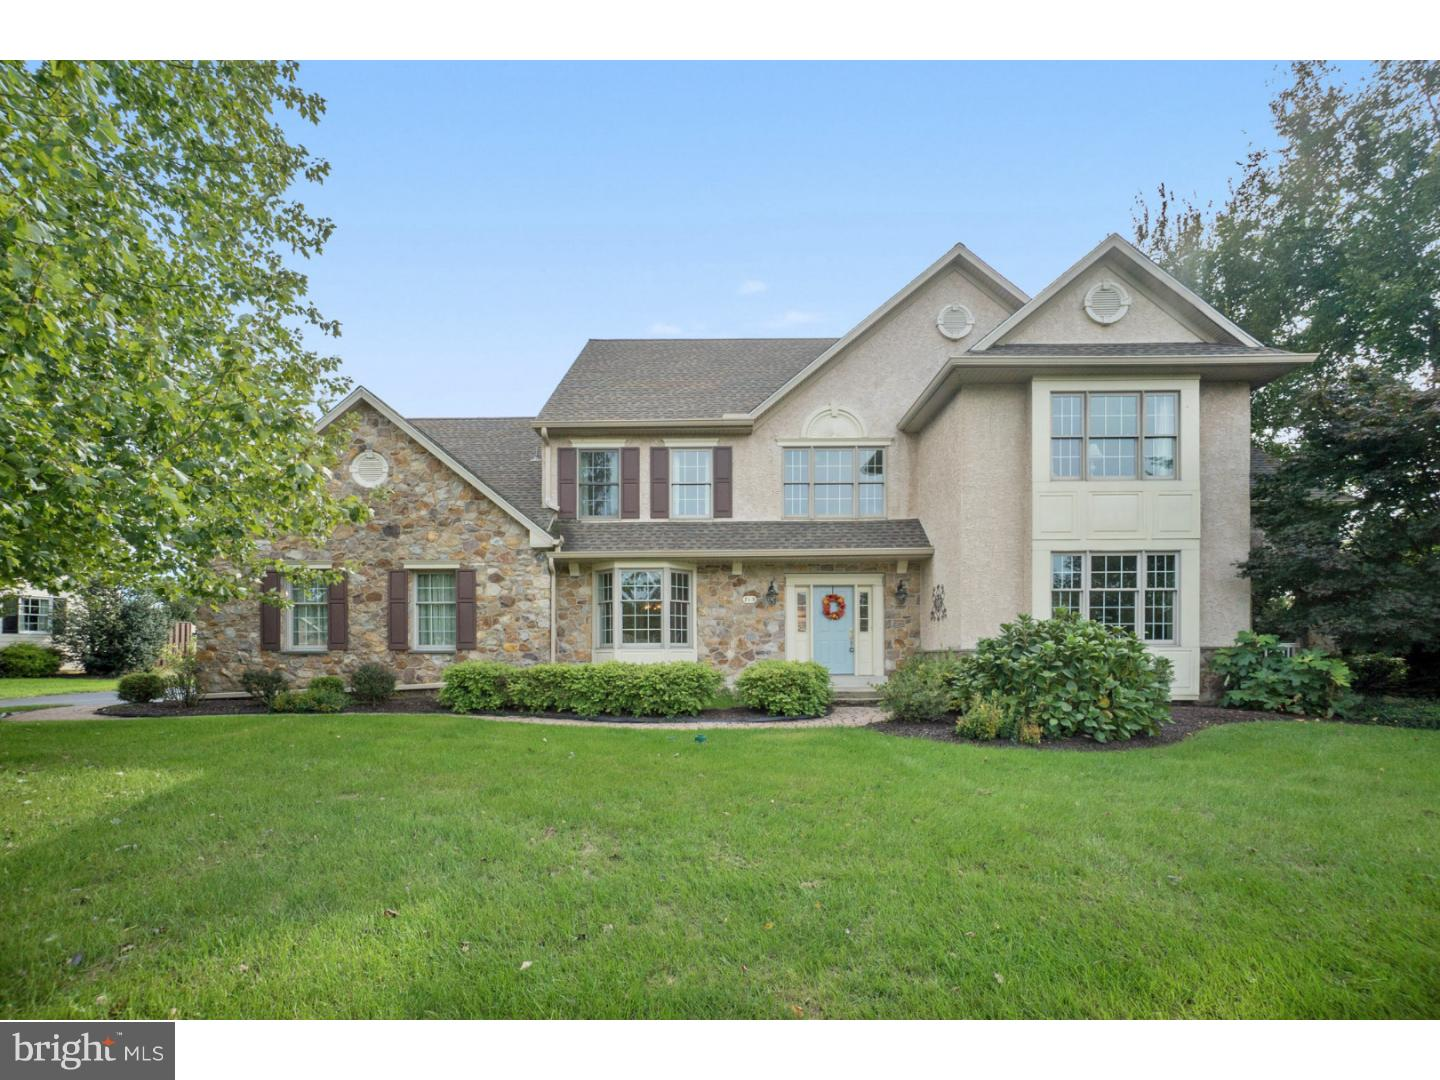 713 YARMOUTH DRIVE, WEST CHESTER, PA 19380